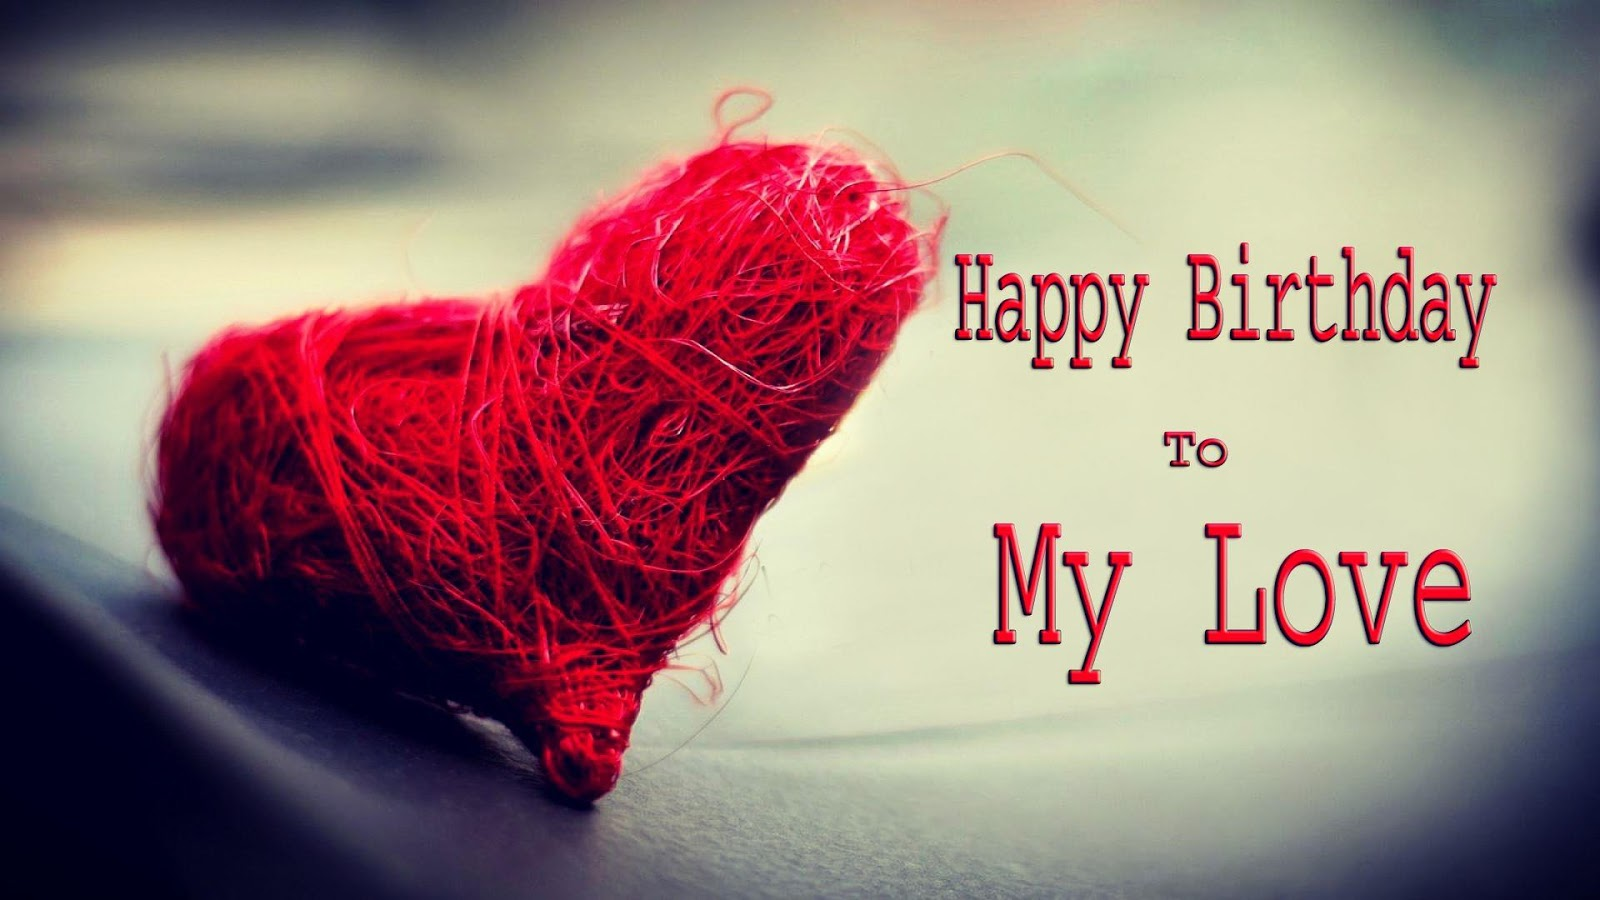 birthday wishes wallpaper for lover ; Happy-Birthday-Wishes-to-my-love-Wallpaper